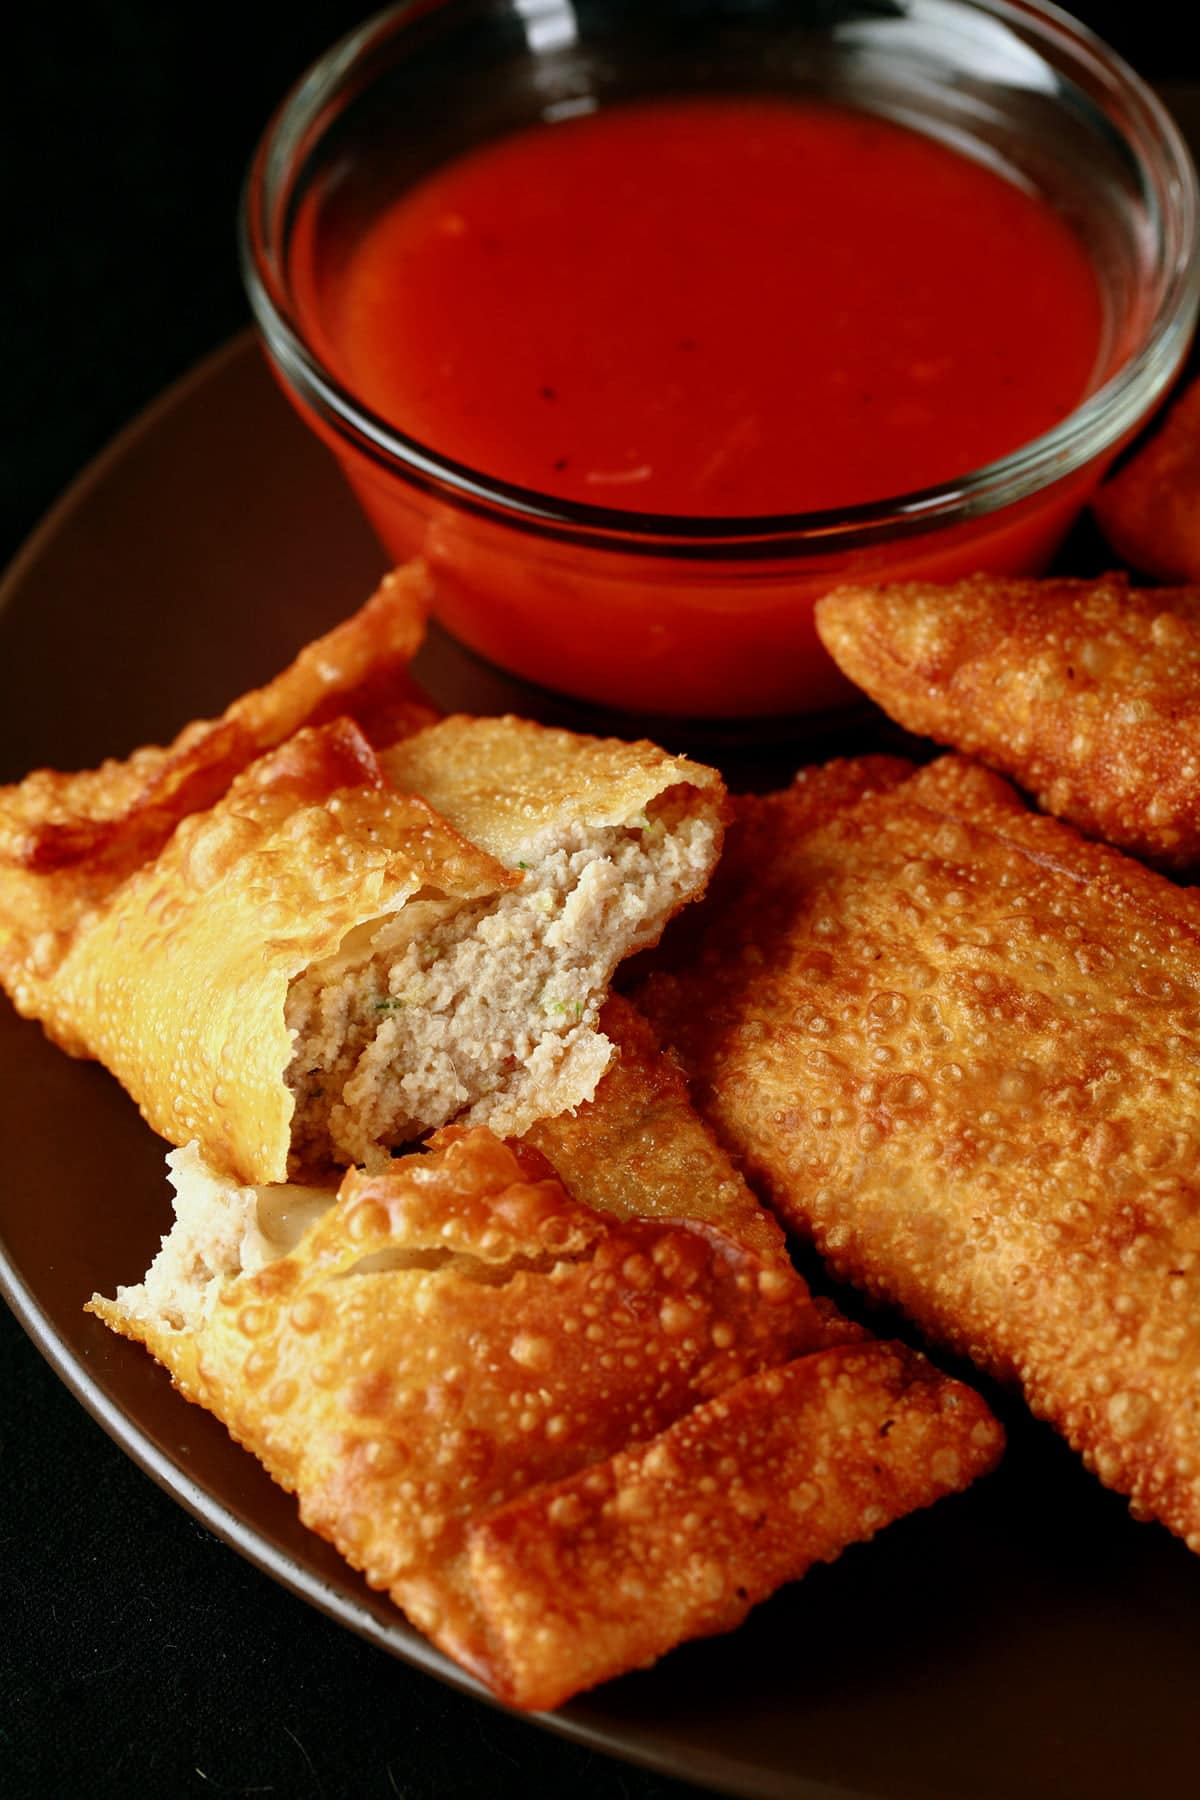 A small round plate holds several Halifax style egg rolls, next to a small bowl of deep orange plum sauce.